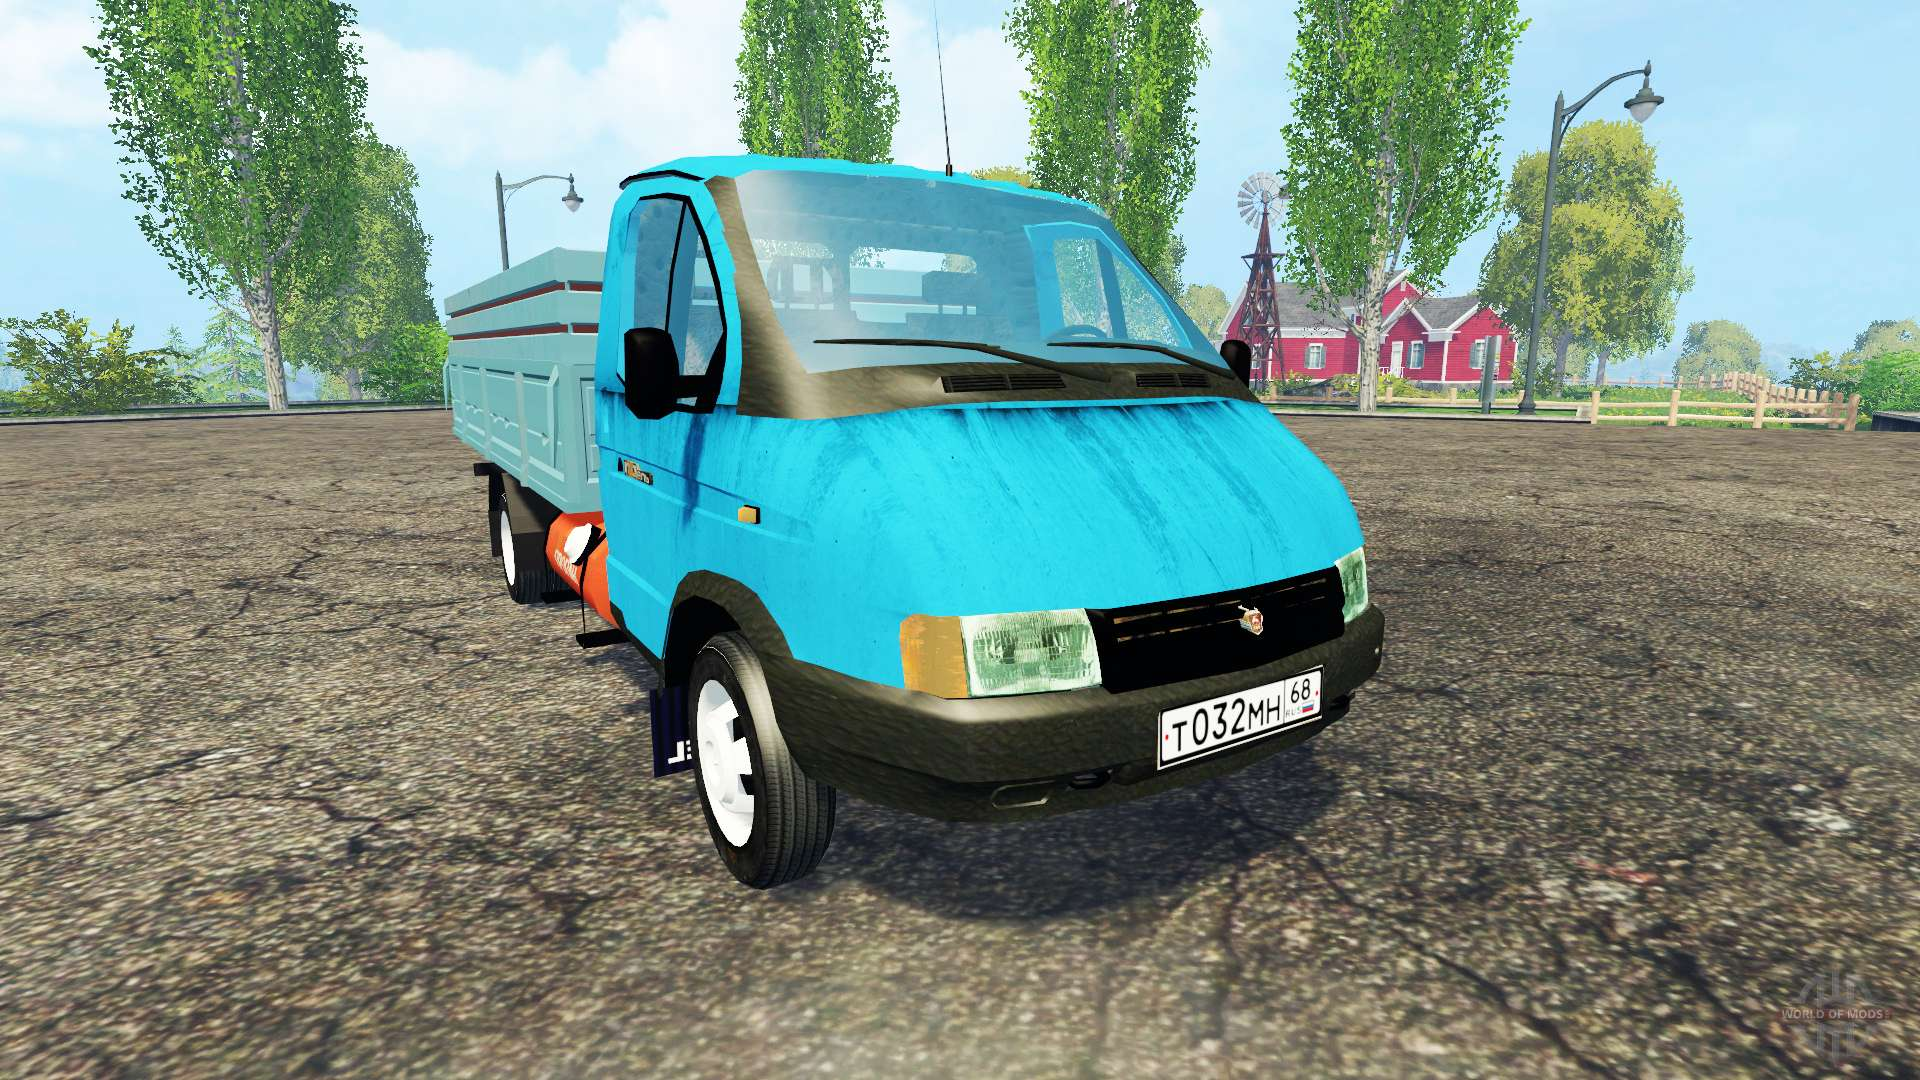 GAZ 3302 - technical specifications and machine overview 88